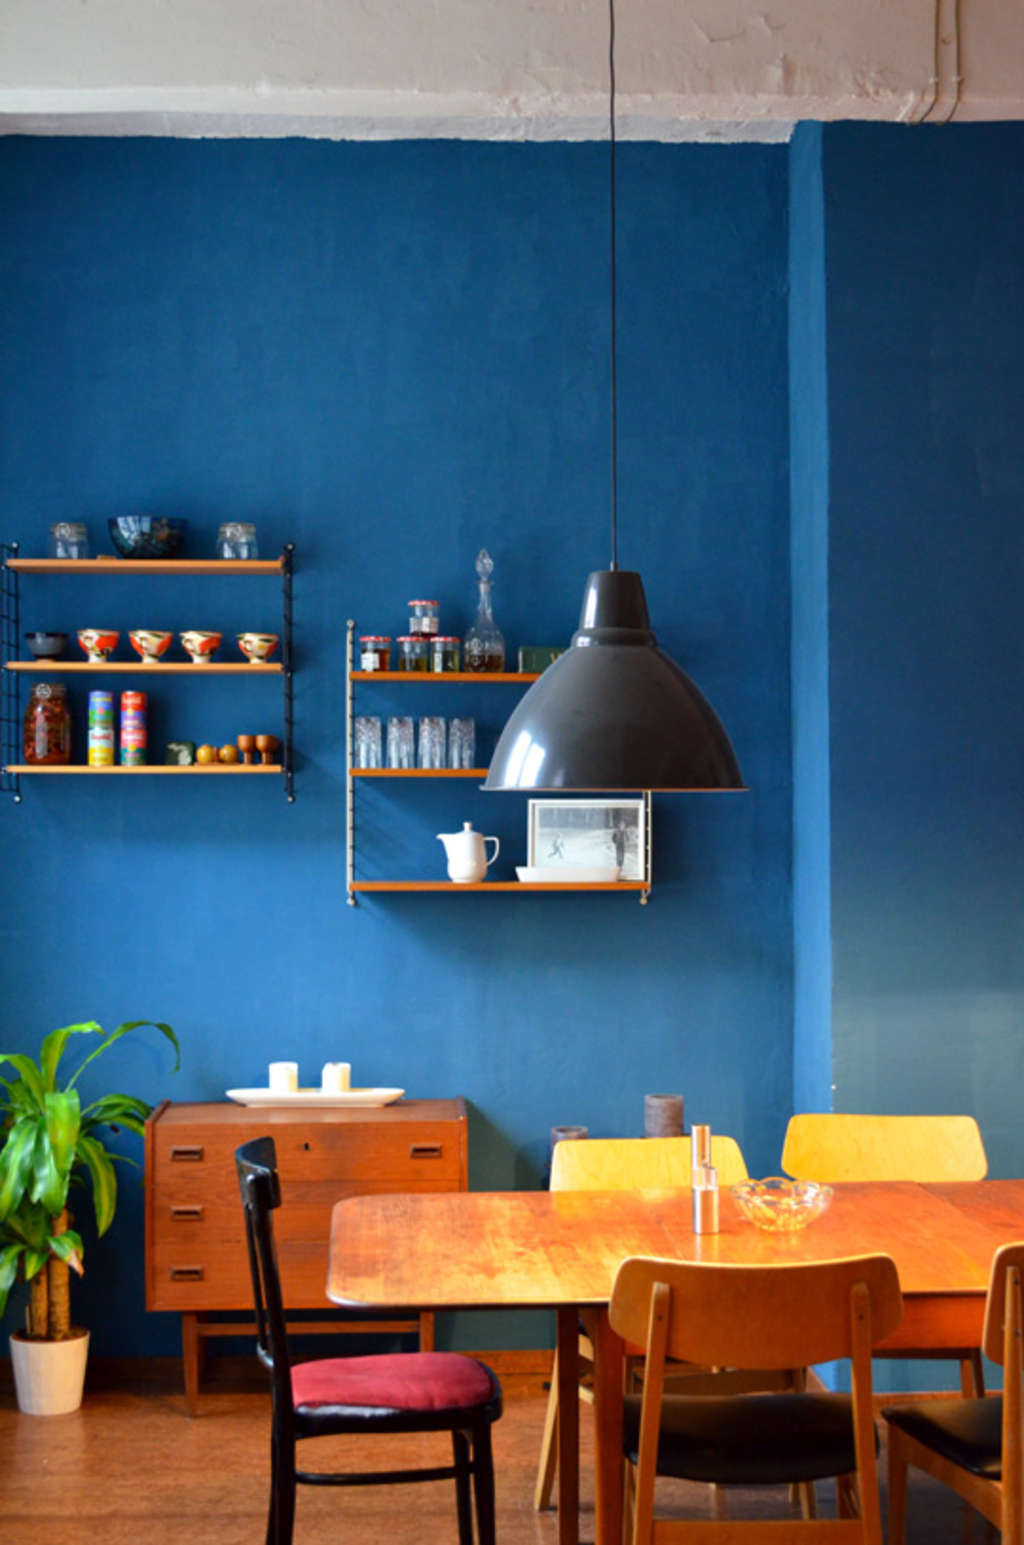 House Tour: A Former Factory Loft in Berlin